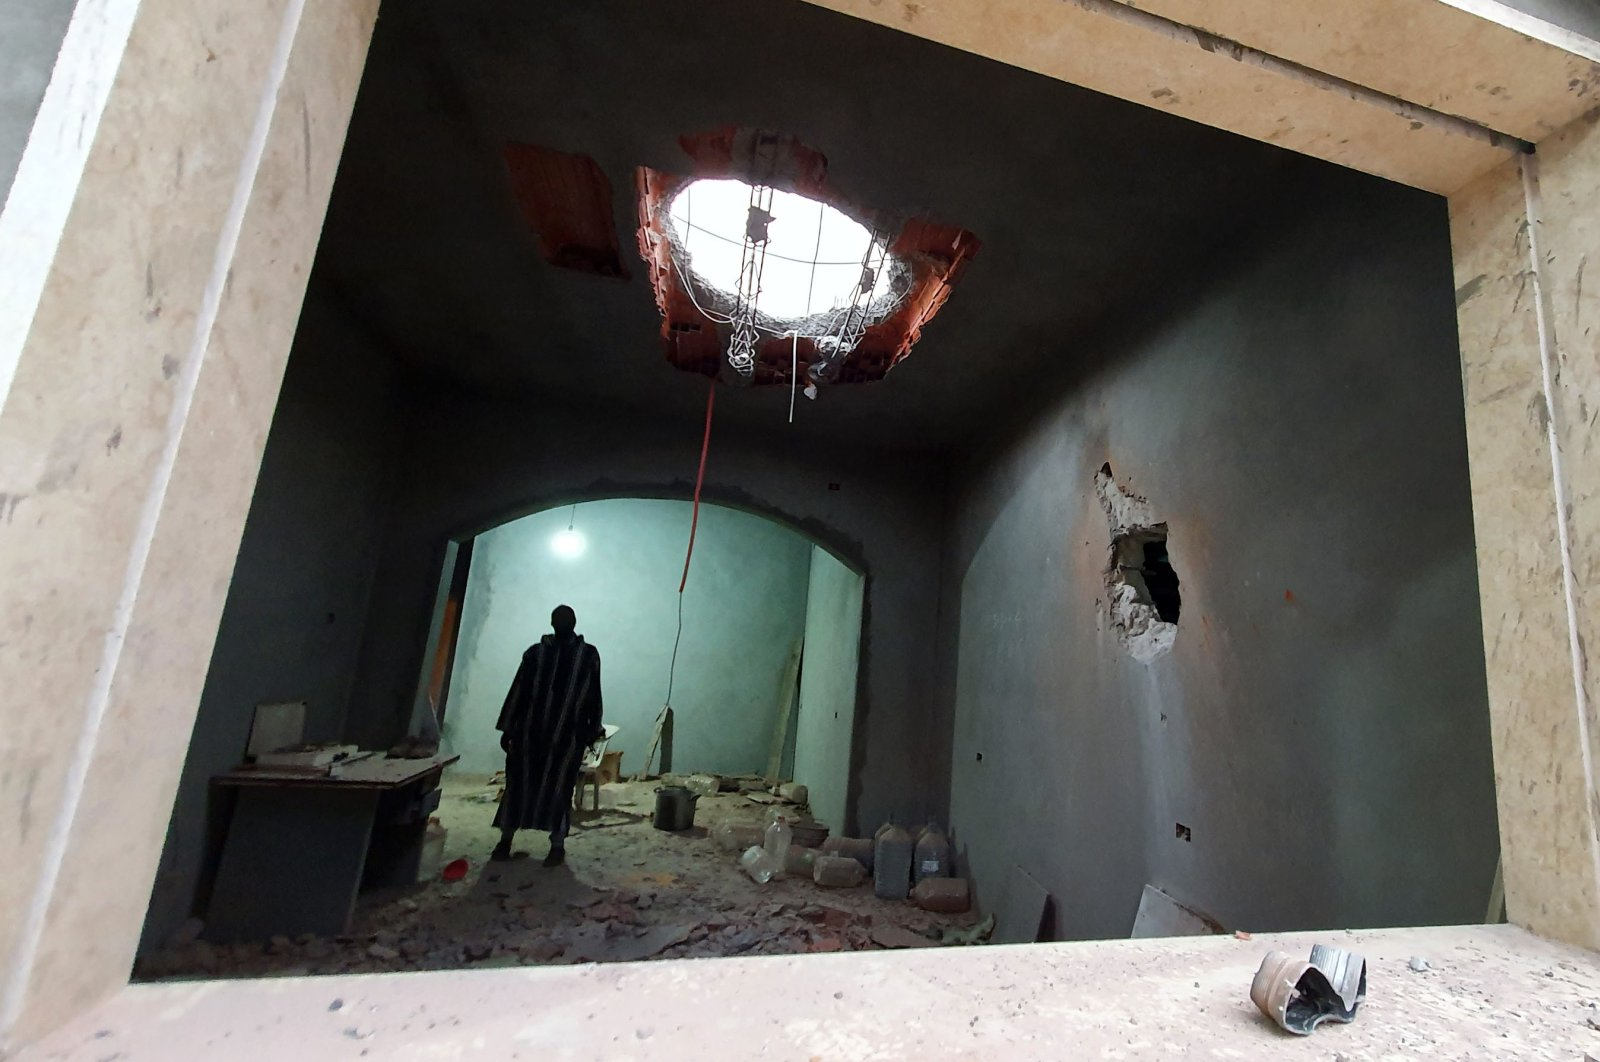 A Libyan man stands at the site of shelling on the residential area of Arada in the capital Tripoli, Tuesday, April 14, 2020. (AFP)